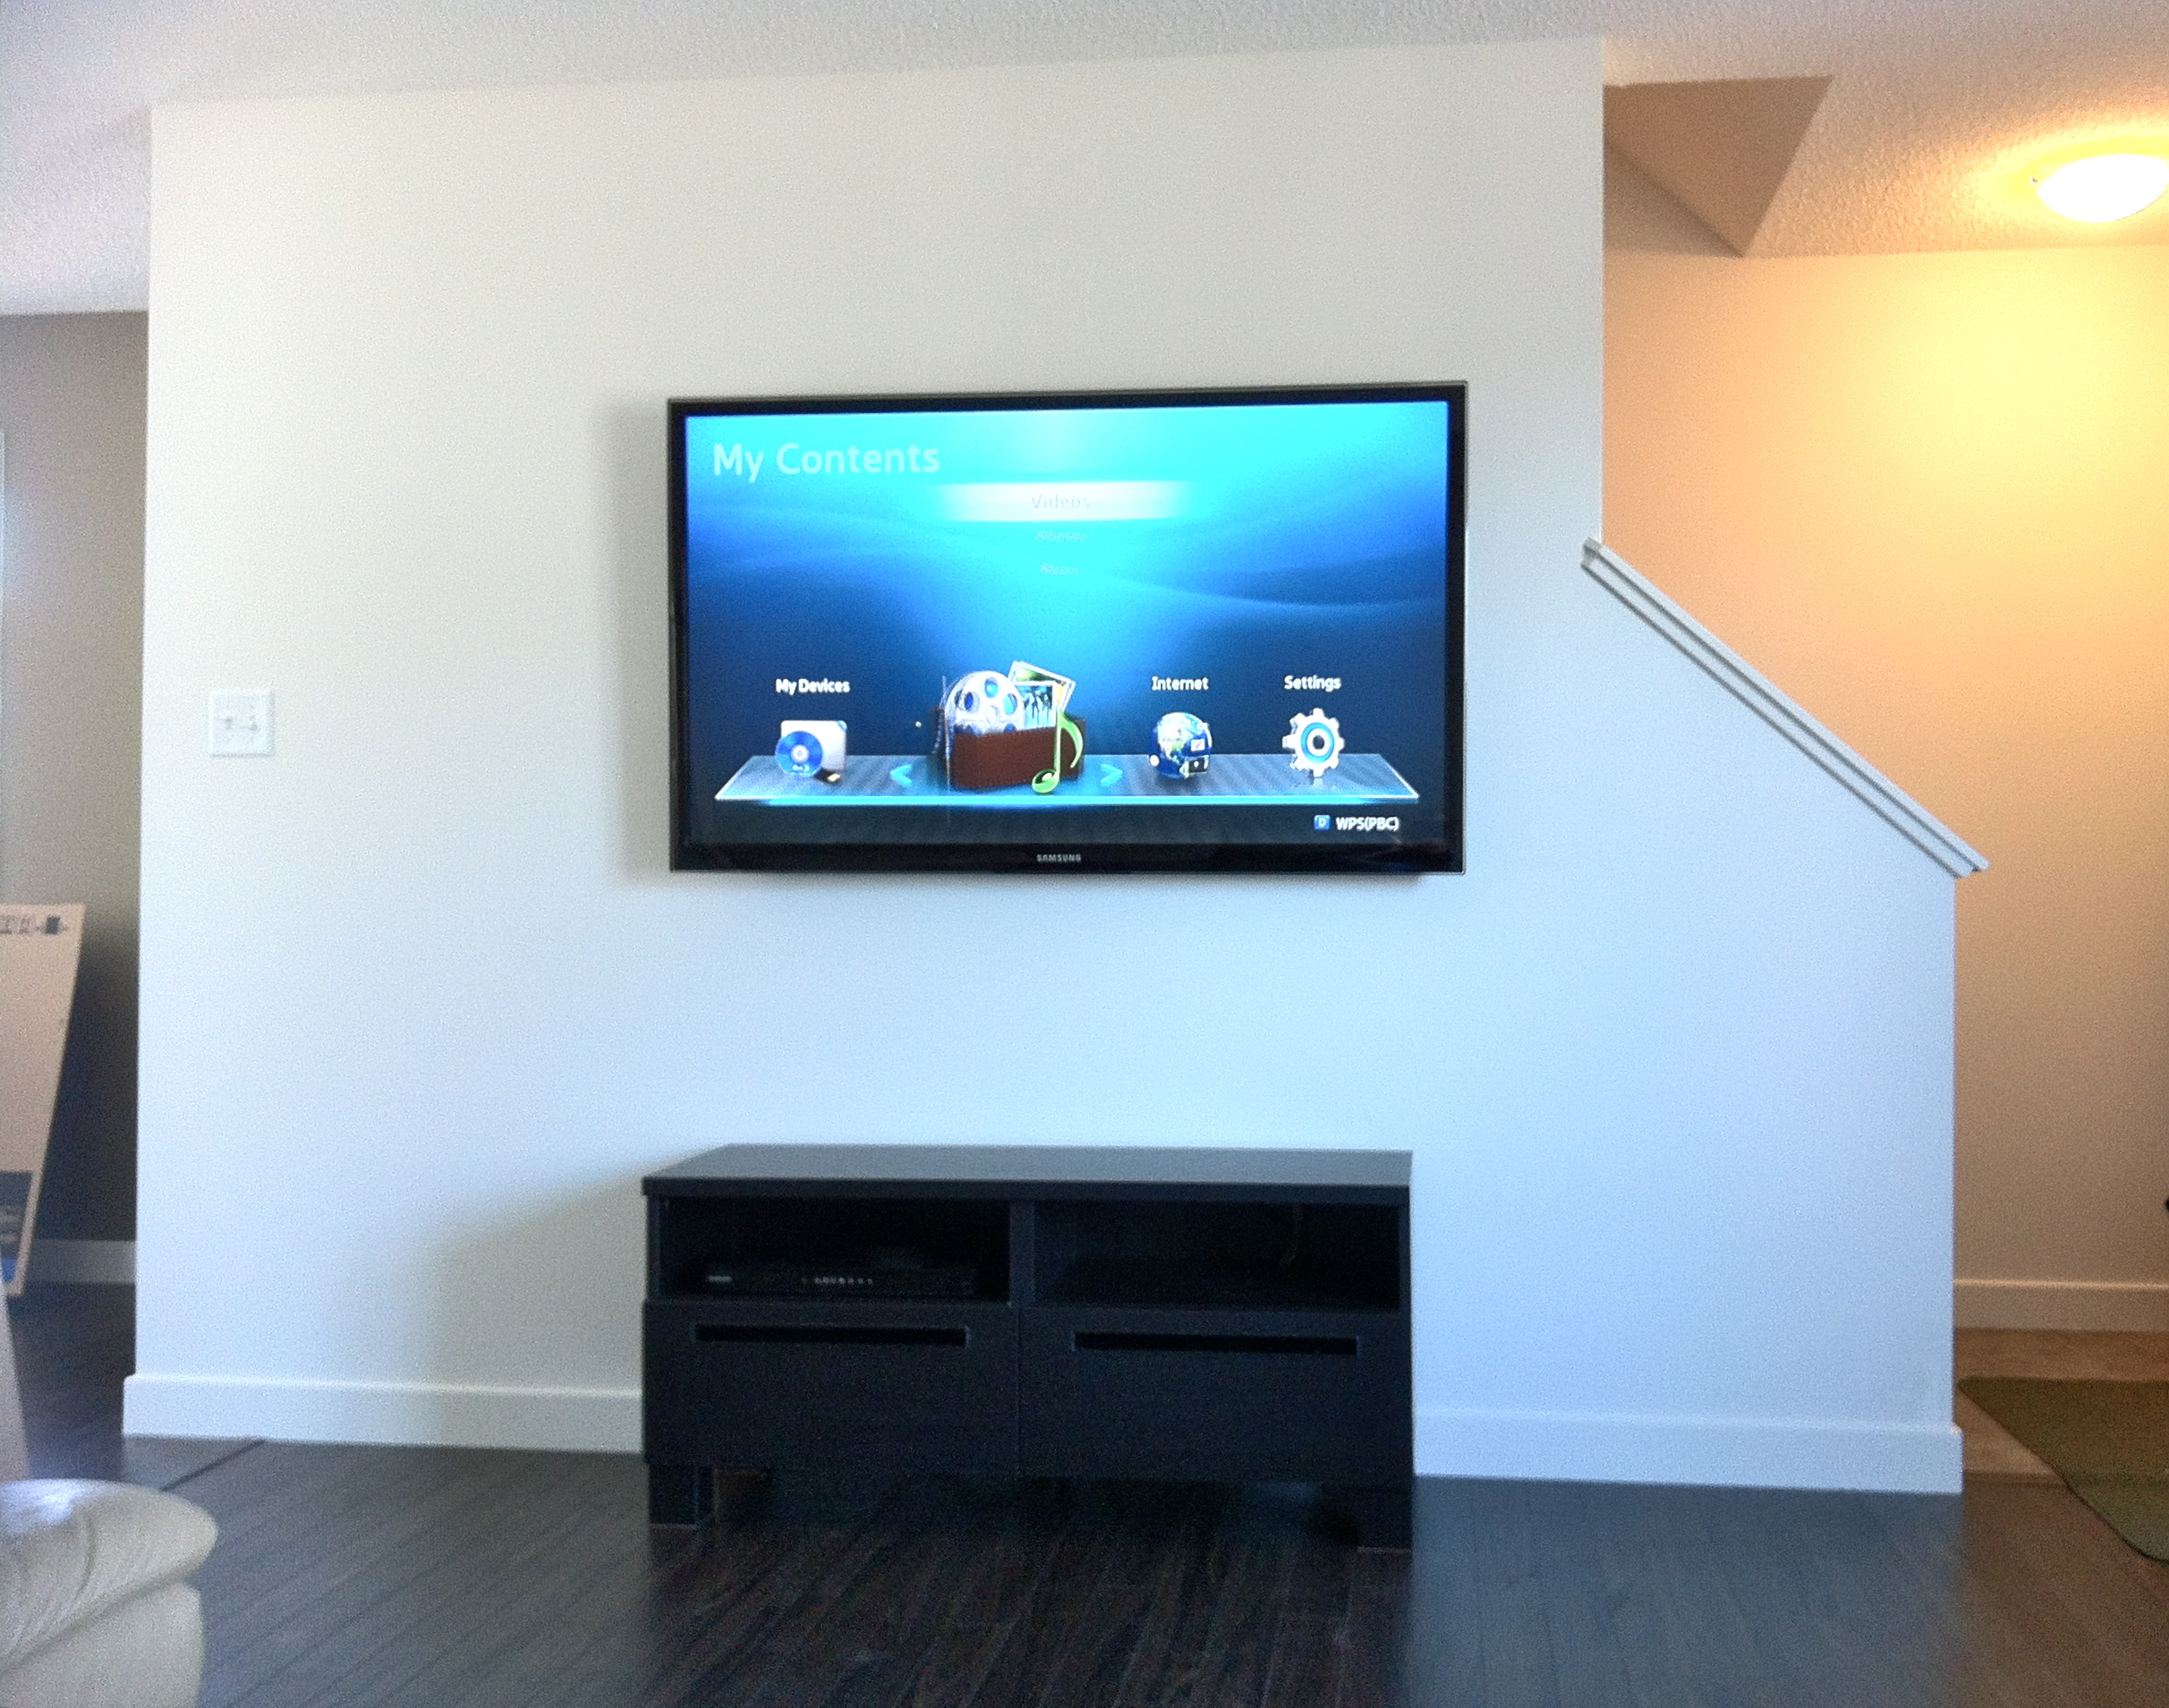 At First Glance Wall Mounting a Flat Screen TV seemed